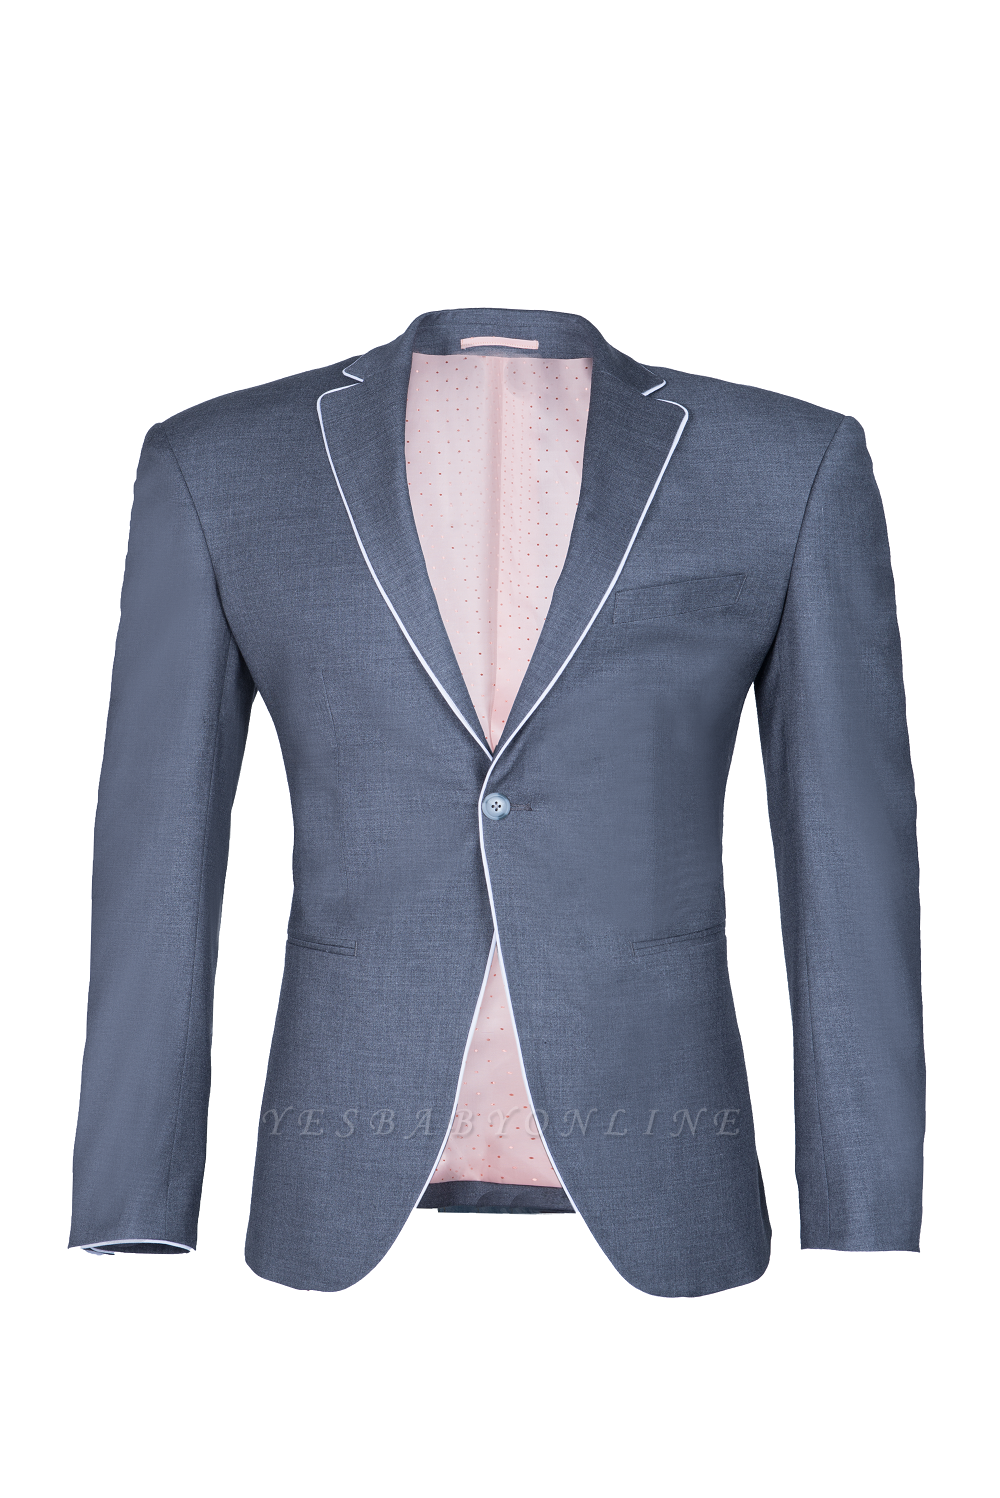 Silver Single Breasted Peak Lapel Wedding Suit For Men Back Vent Fashion